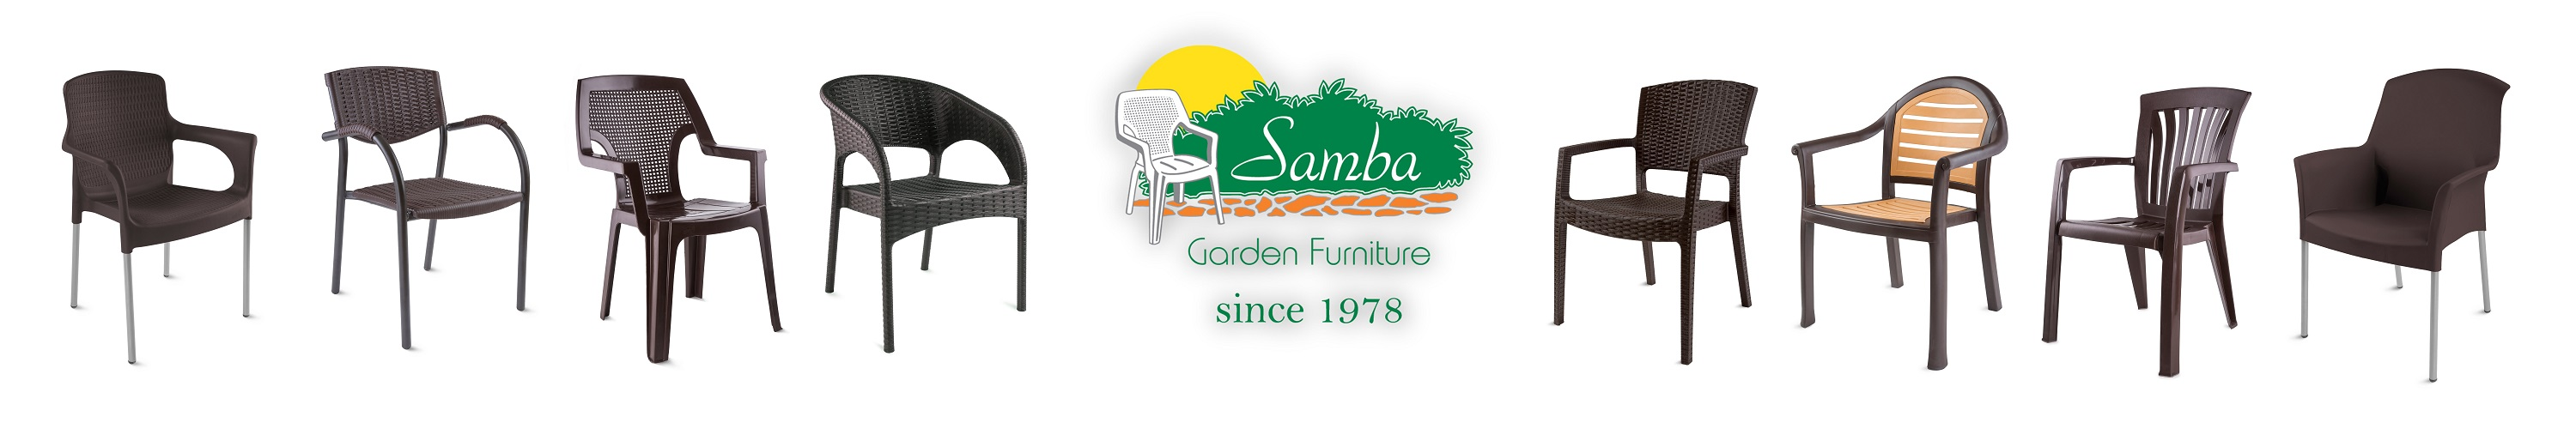 "Initially, Jamil Sahouri & Bros. Co. was started as an importer of plastic house-ware products. In 1978, a manufacturing facility was launched and consisted of 3 Plastic injection machines, a few simple molds and ten factory employees. Over the 5 years that followed, more house-ware items were added to the products' line, as well as a new full line of Indoor and outdoor planters. In 1990, due to the high cost of wooden and metal furniture, the company began to produce less expensive, yet more durable plastic furniture which does not require any maintenance. Hence a large variety of indoor and outdoor furniture were added to our production line. Around the end of the nineties, our furniture line consisted of at least 40 styles of chairs and tables to meet every taste and environment, all of which were marketed under the Trade name ""Samba"". As time progressed, our production expanded into manufacturing other household 'market demanded' and much needed products such as Shelves, Closets,"